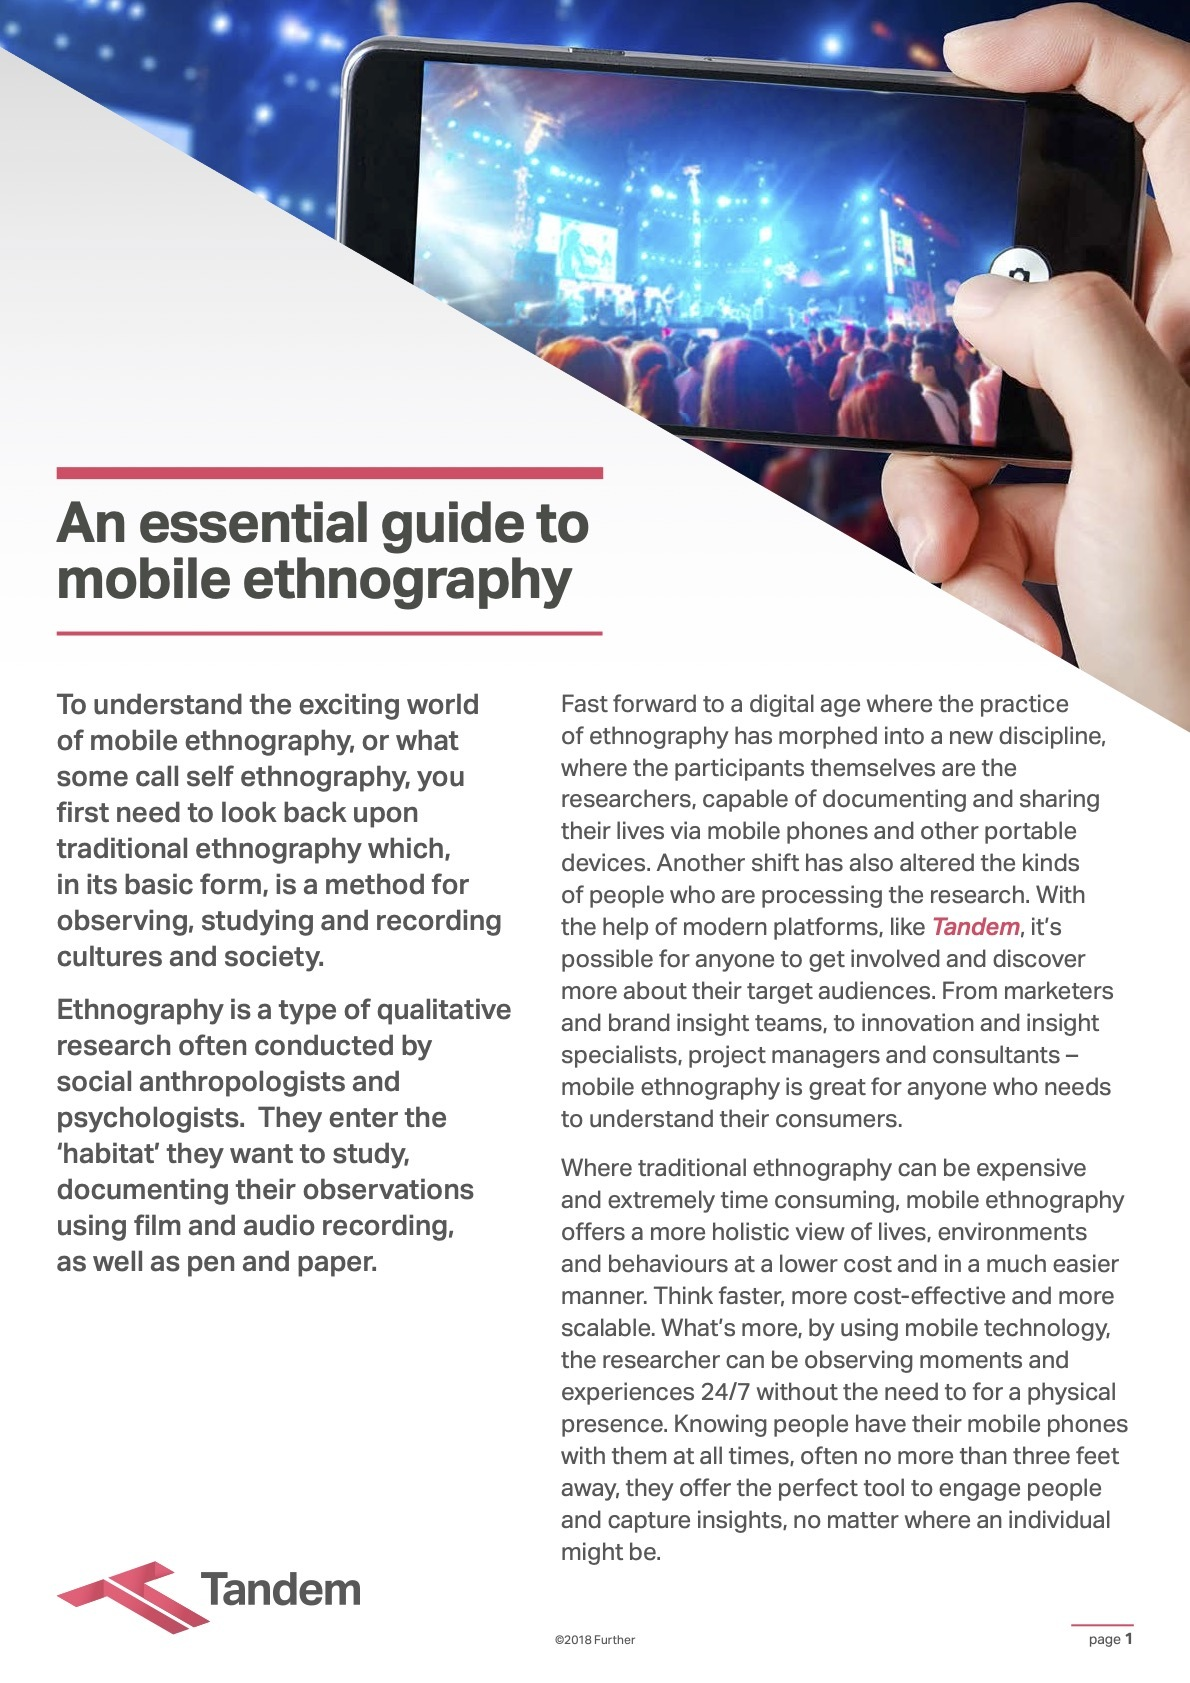 Essential_guide_to_mobile_ethnography